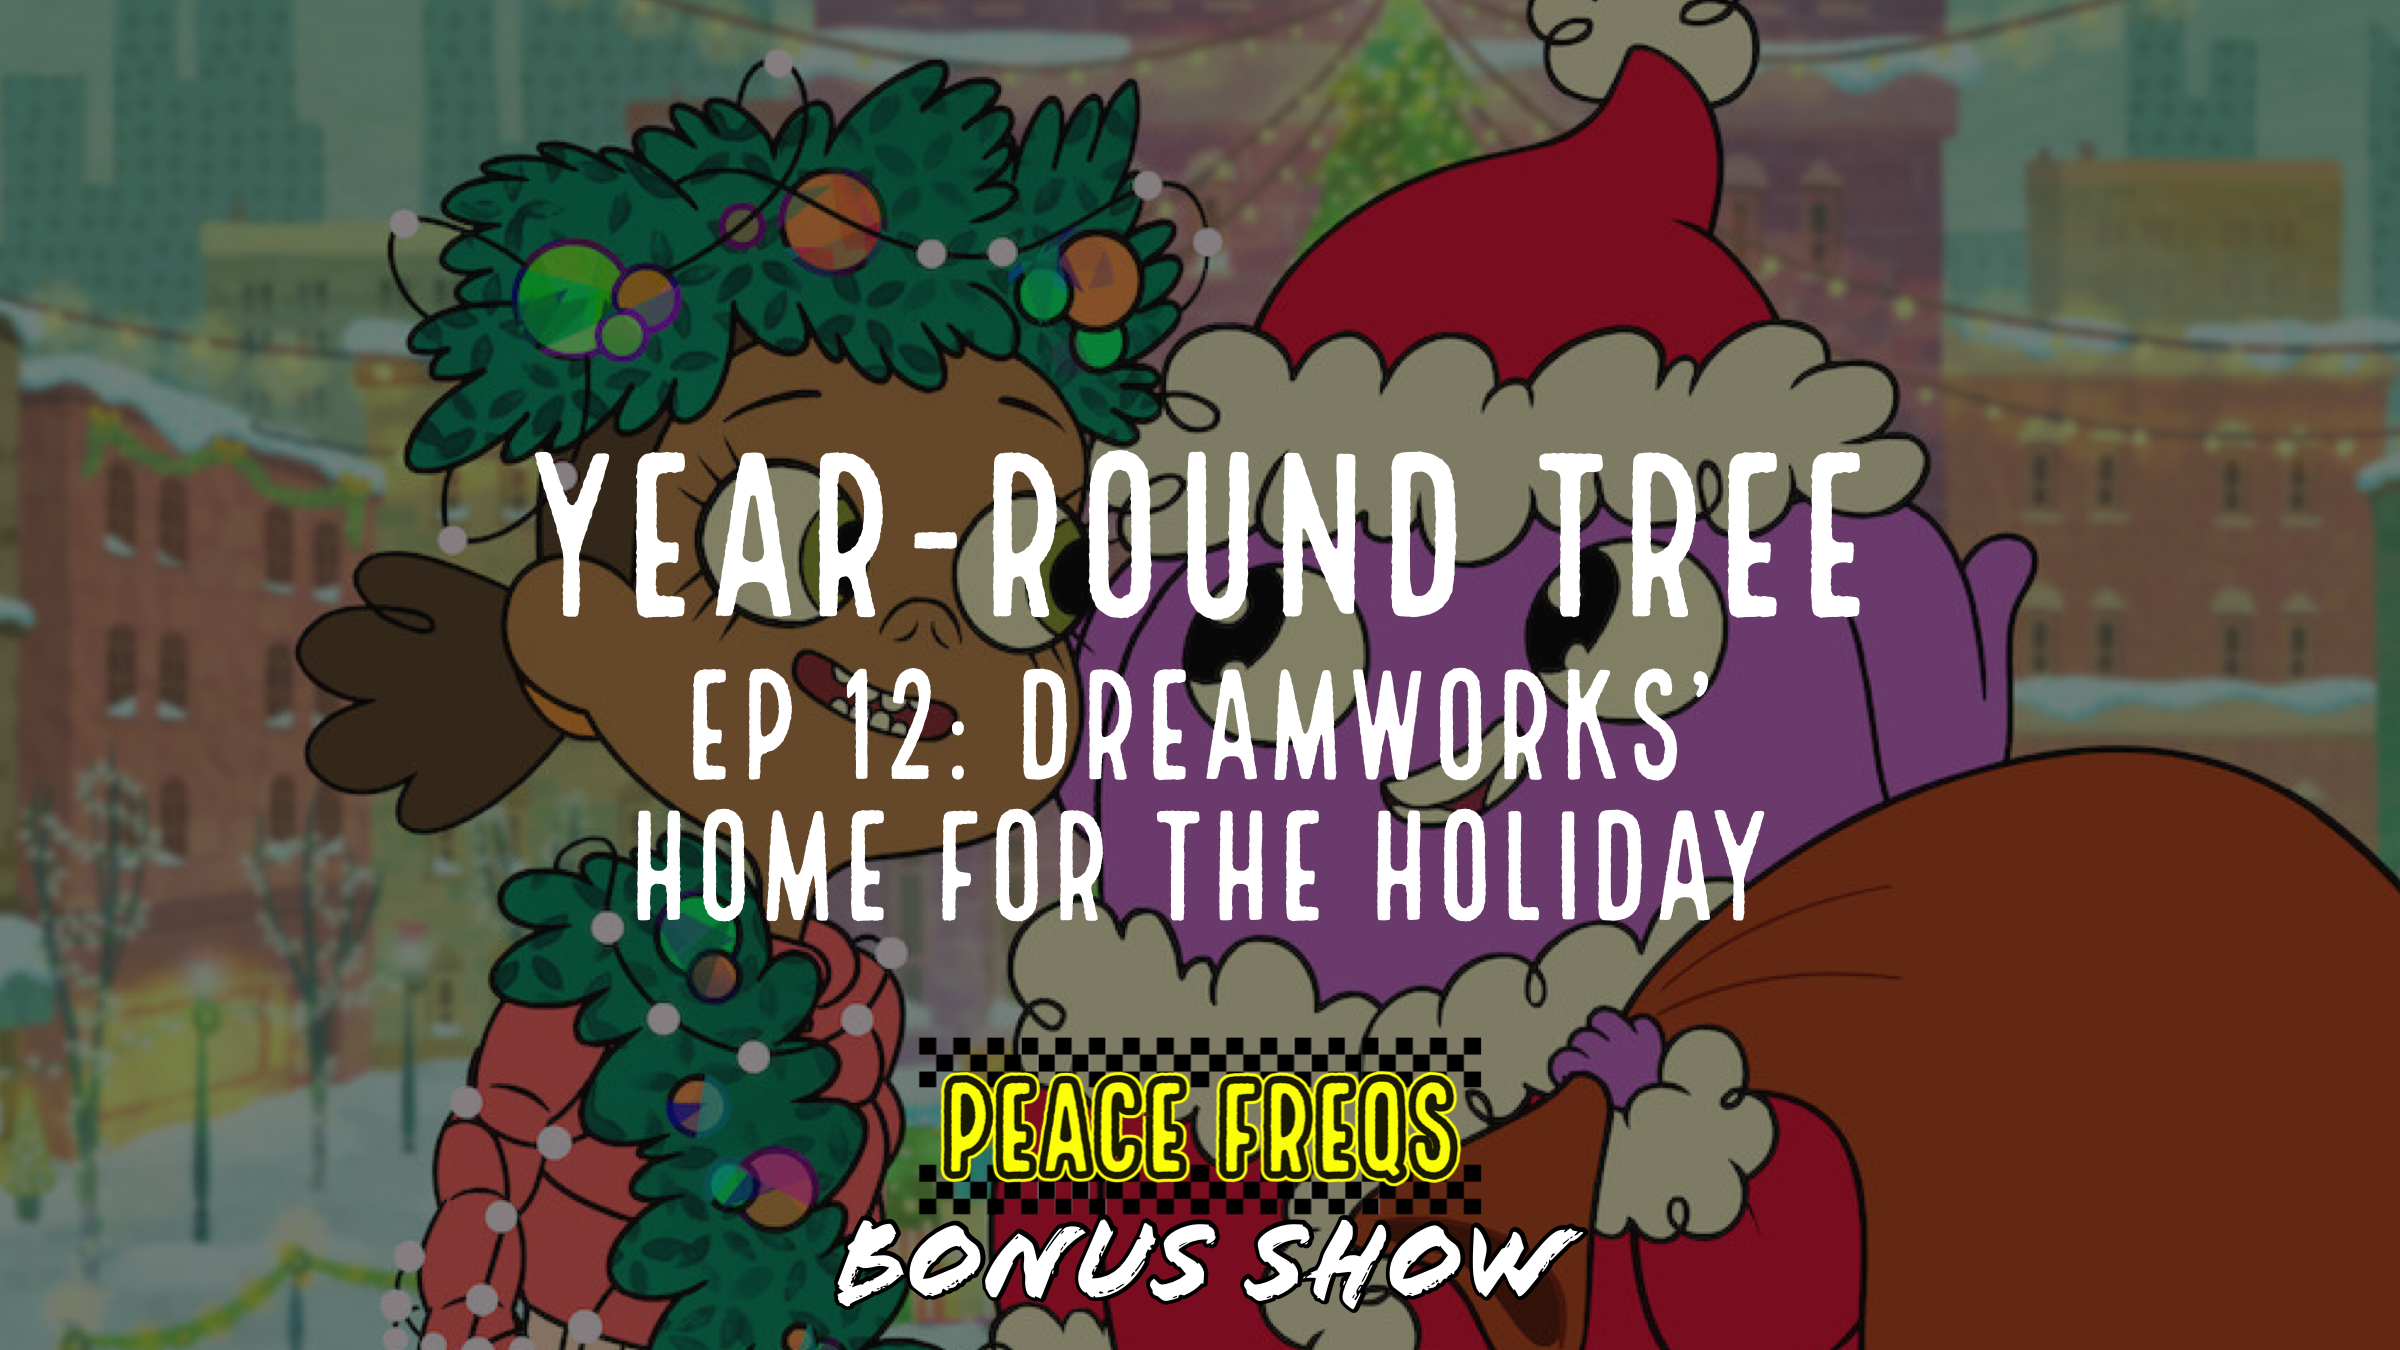 Dreamworks' Home: For The Holiday Review – Year-Round Tree 012